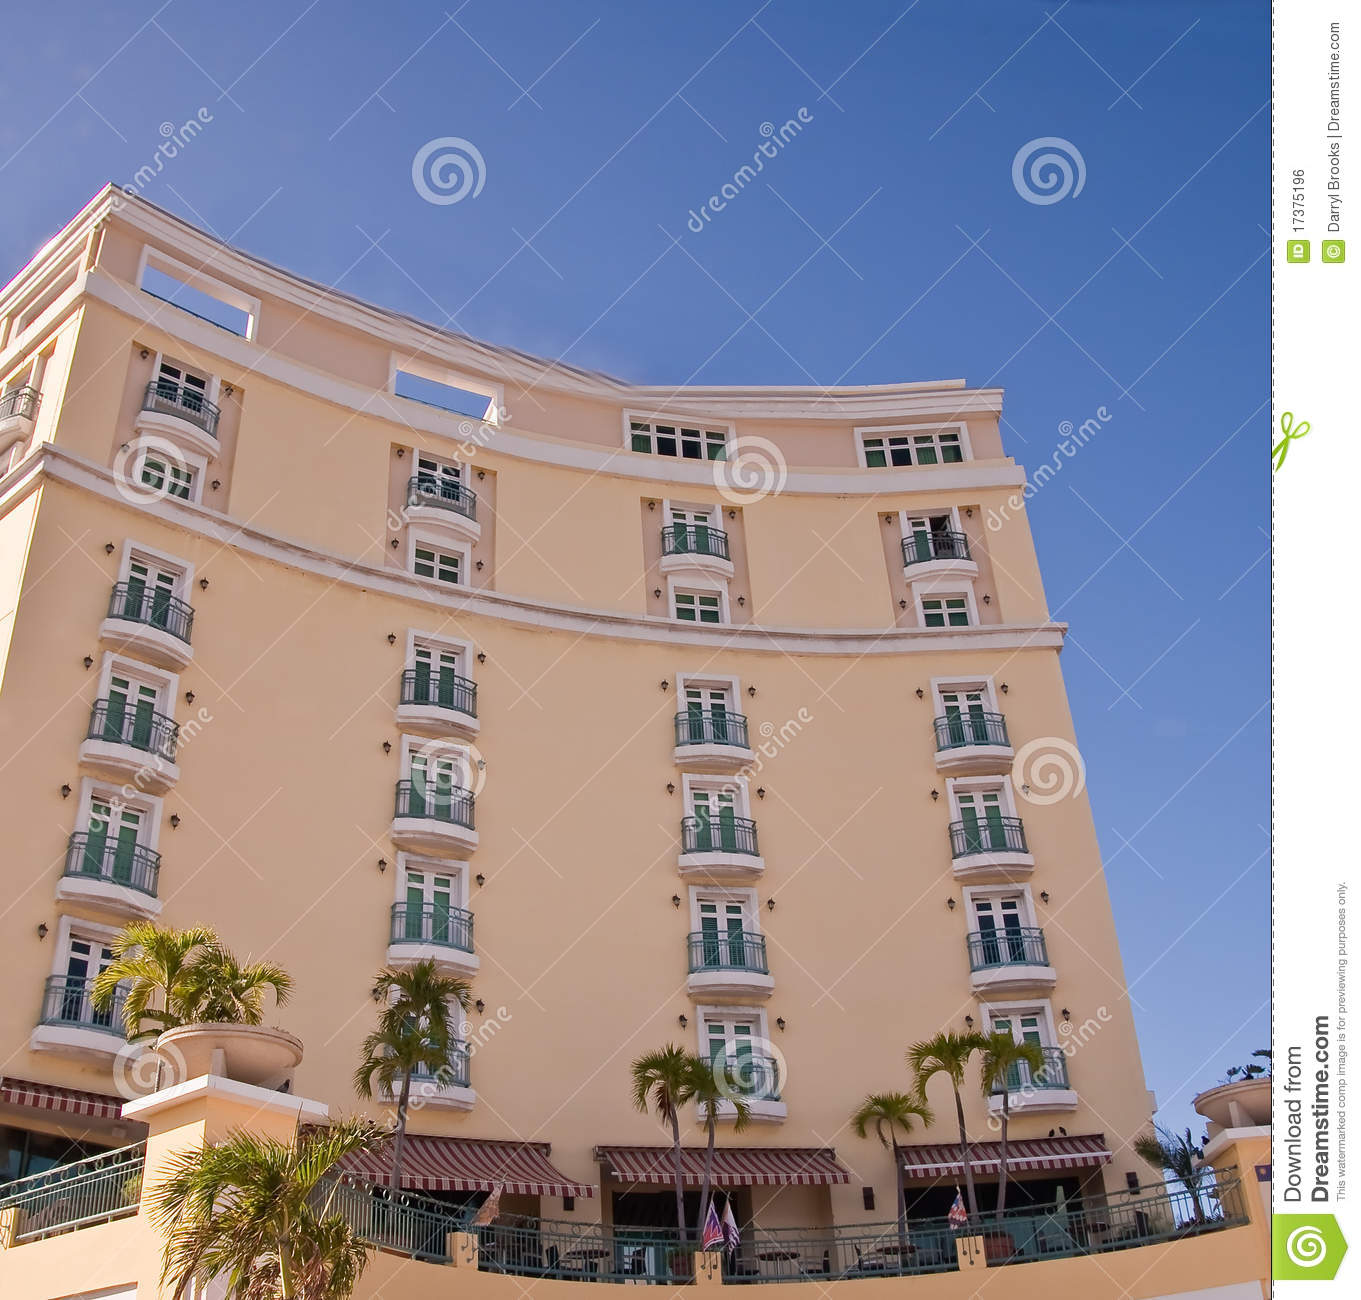 Yellow curved hotel with green balconies royalty free for Hotels with balconies